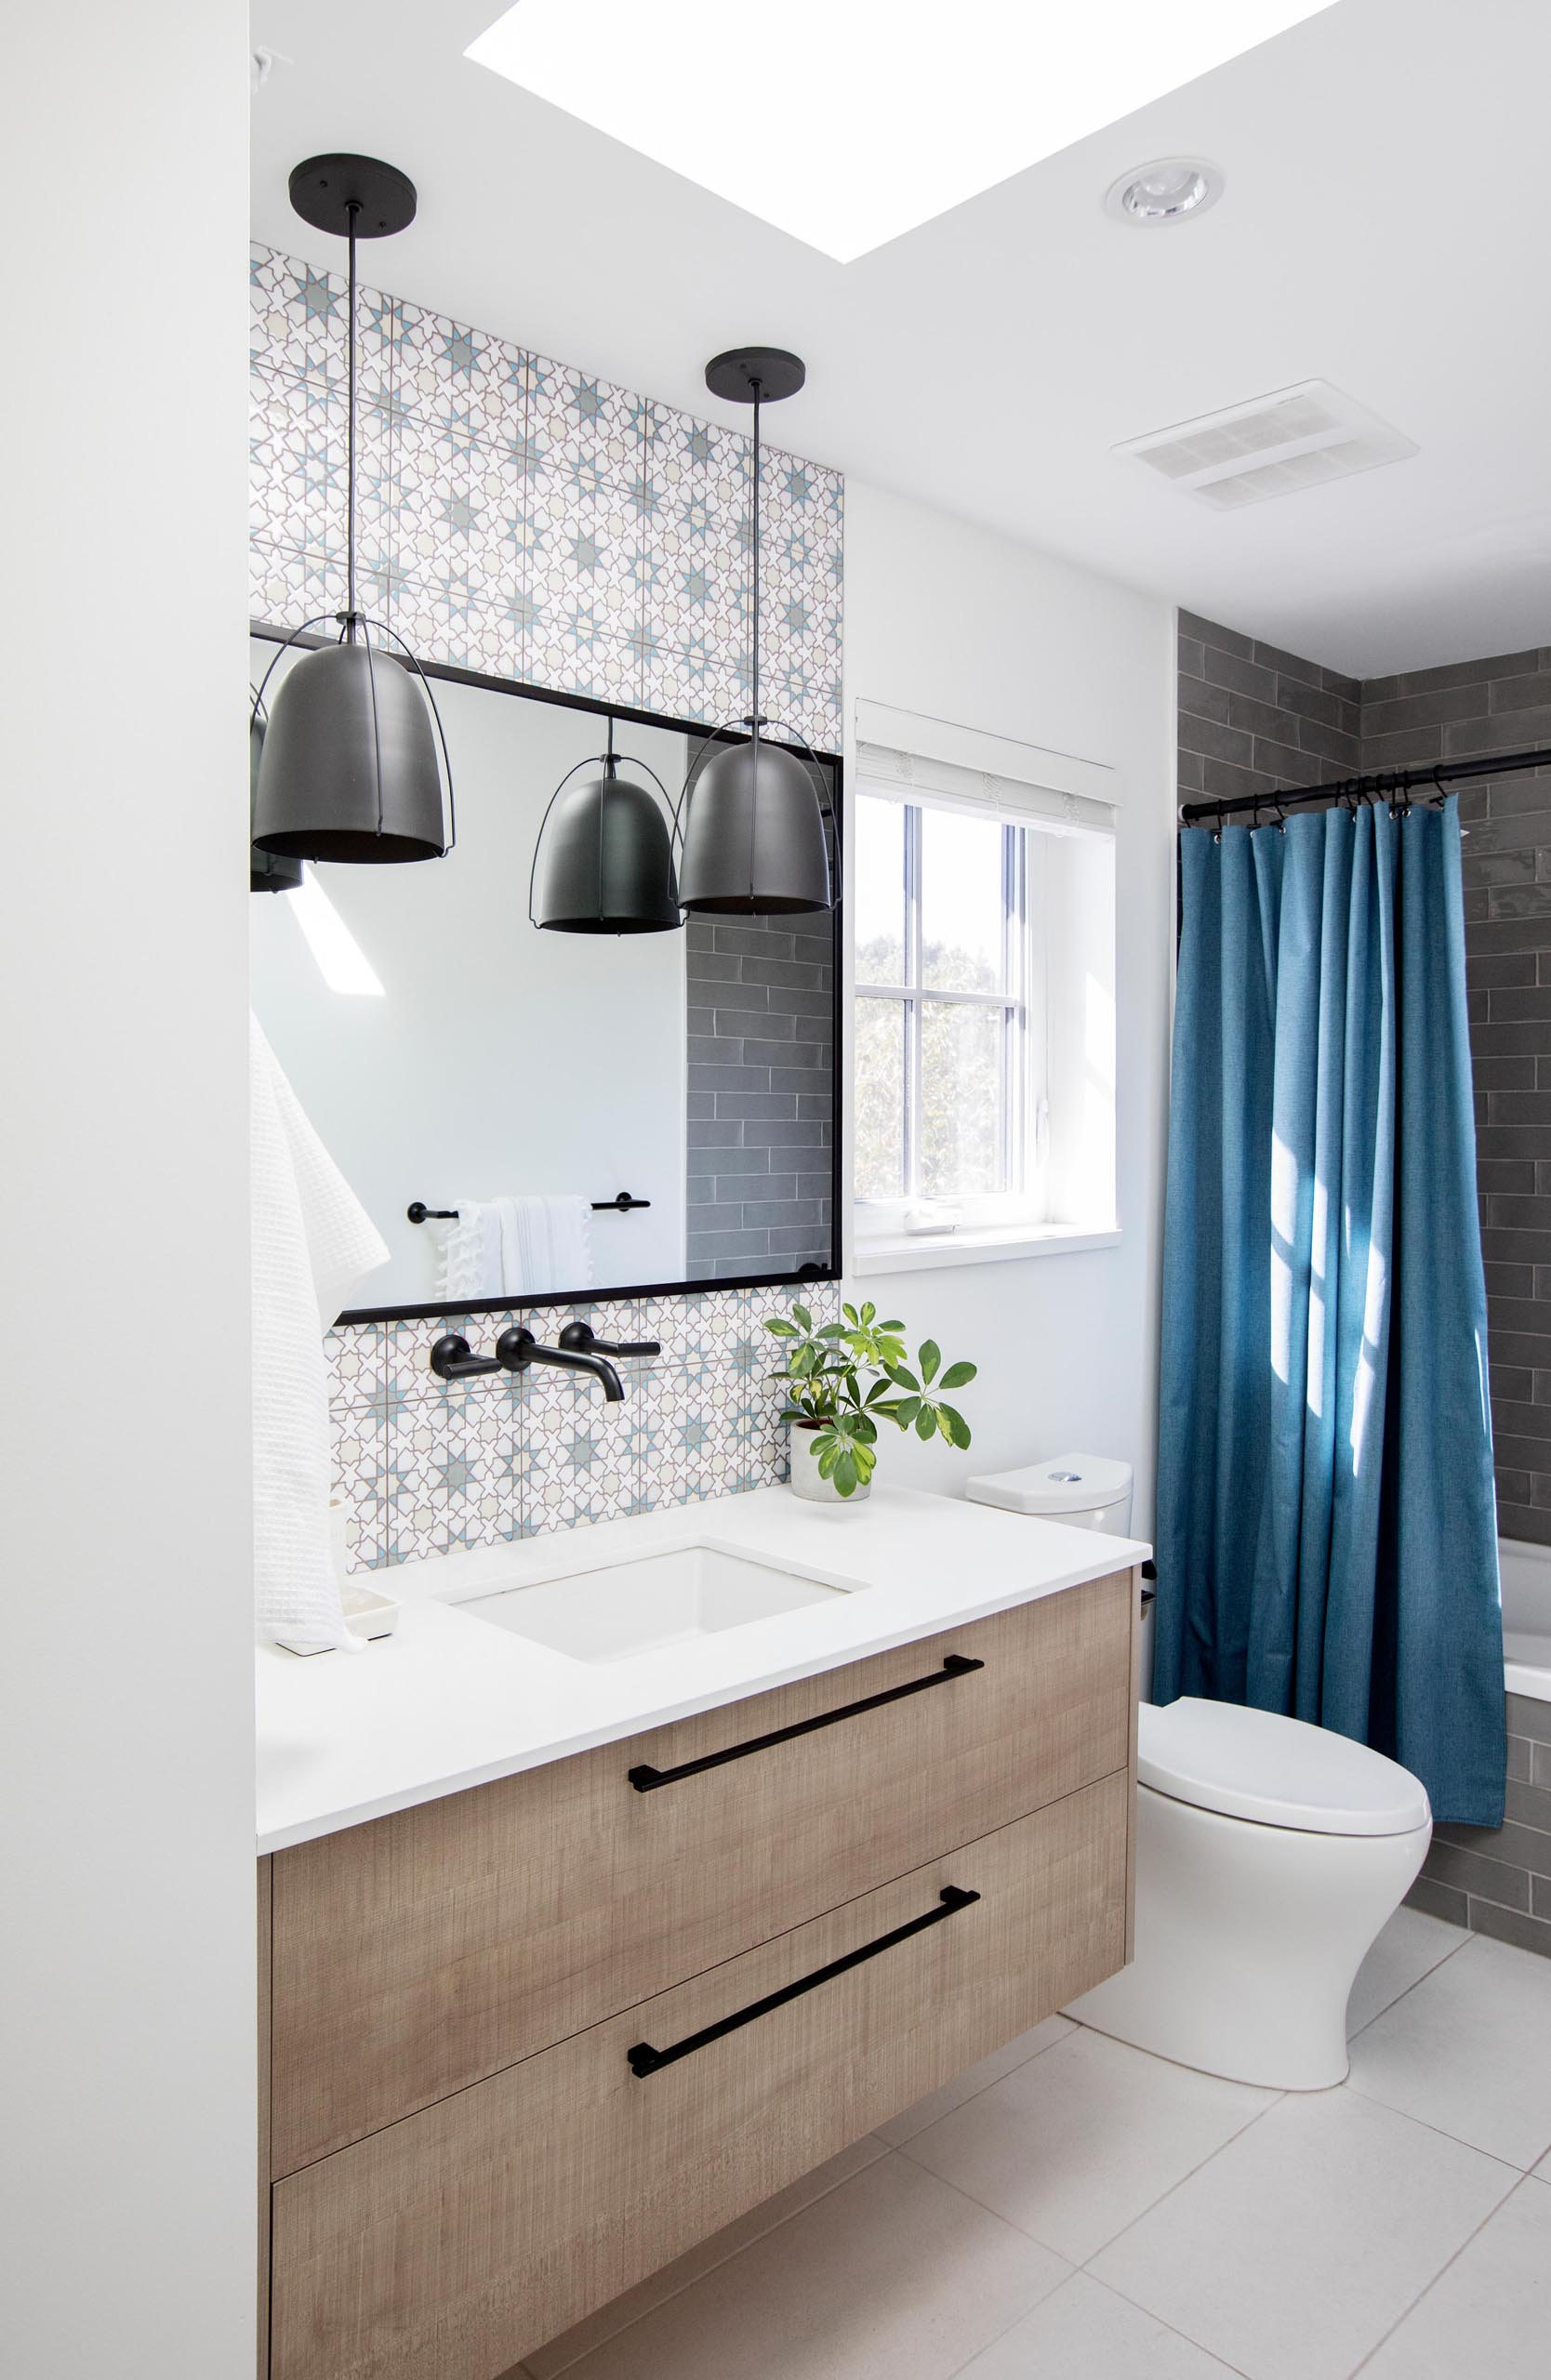 In this modern bathroom, patterned tiles have been used to designate the vanity area, while black pendant lights complement the black mirror frame and shower curtain rod.